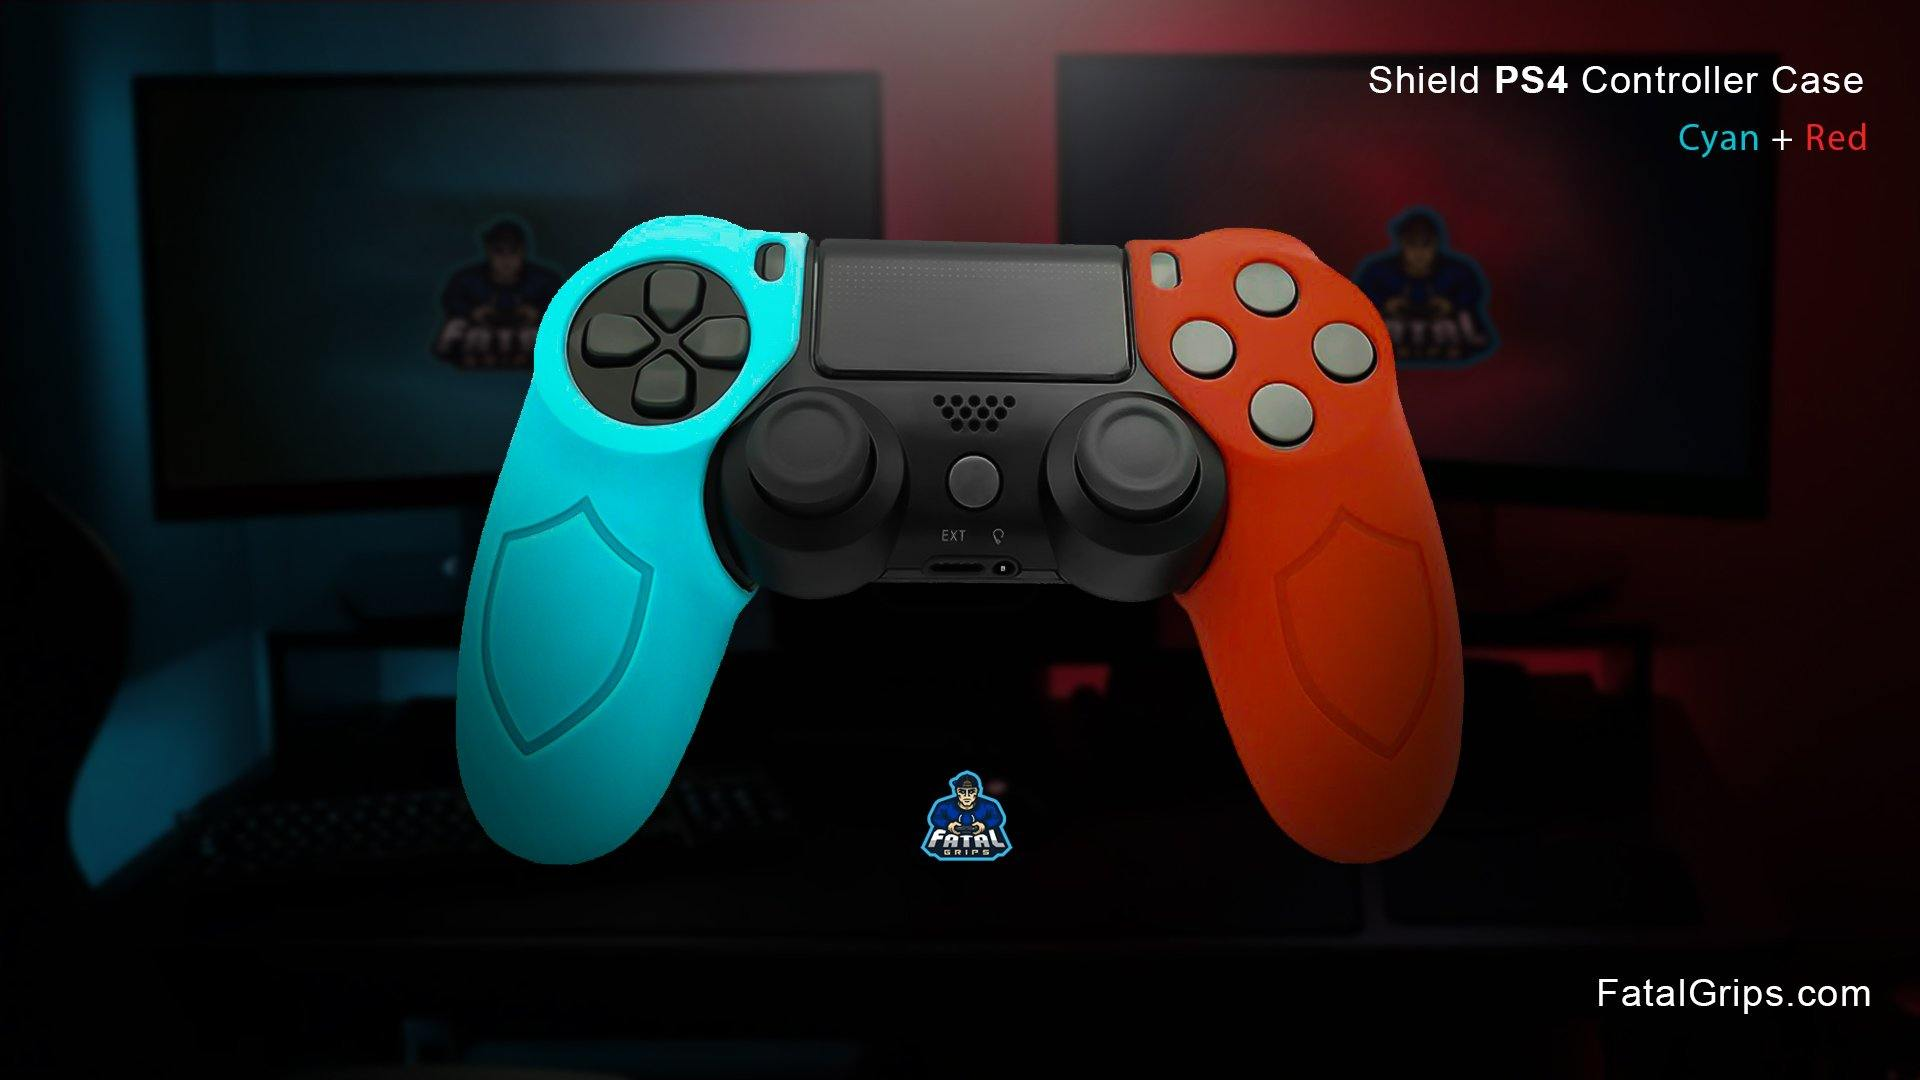 Cyan/Red PS4 Shield Controller Case - Fatal Grips